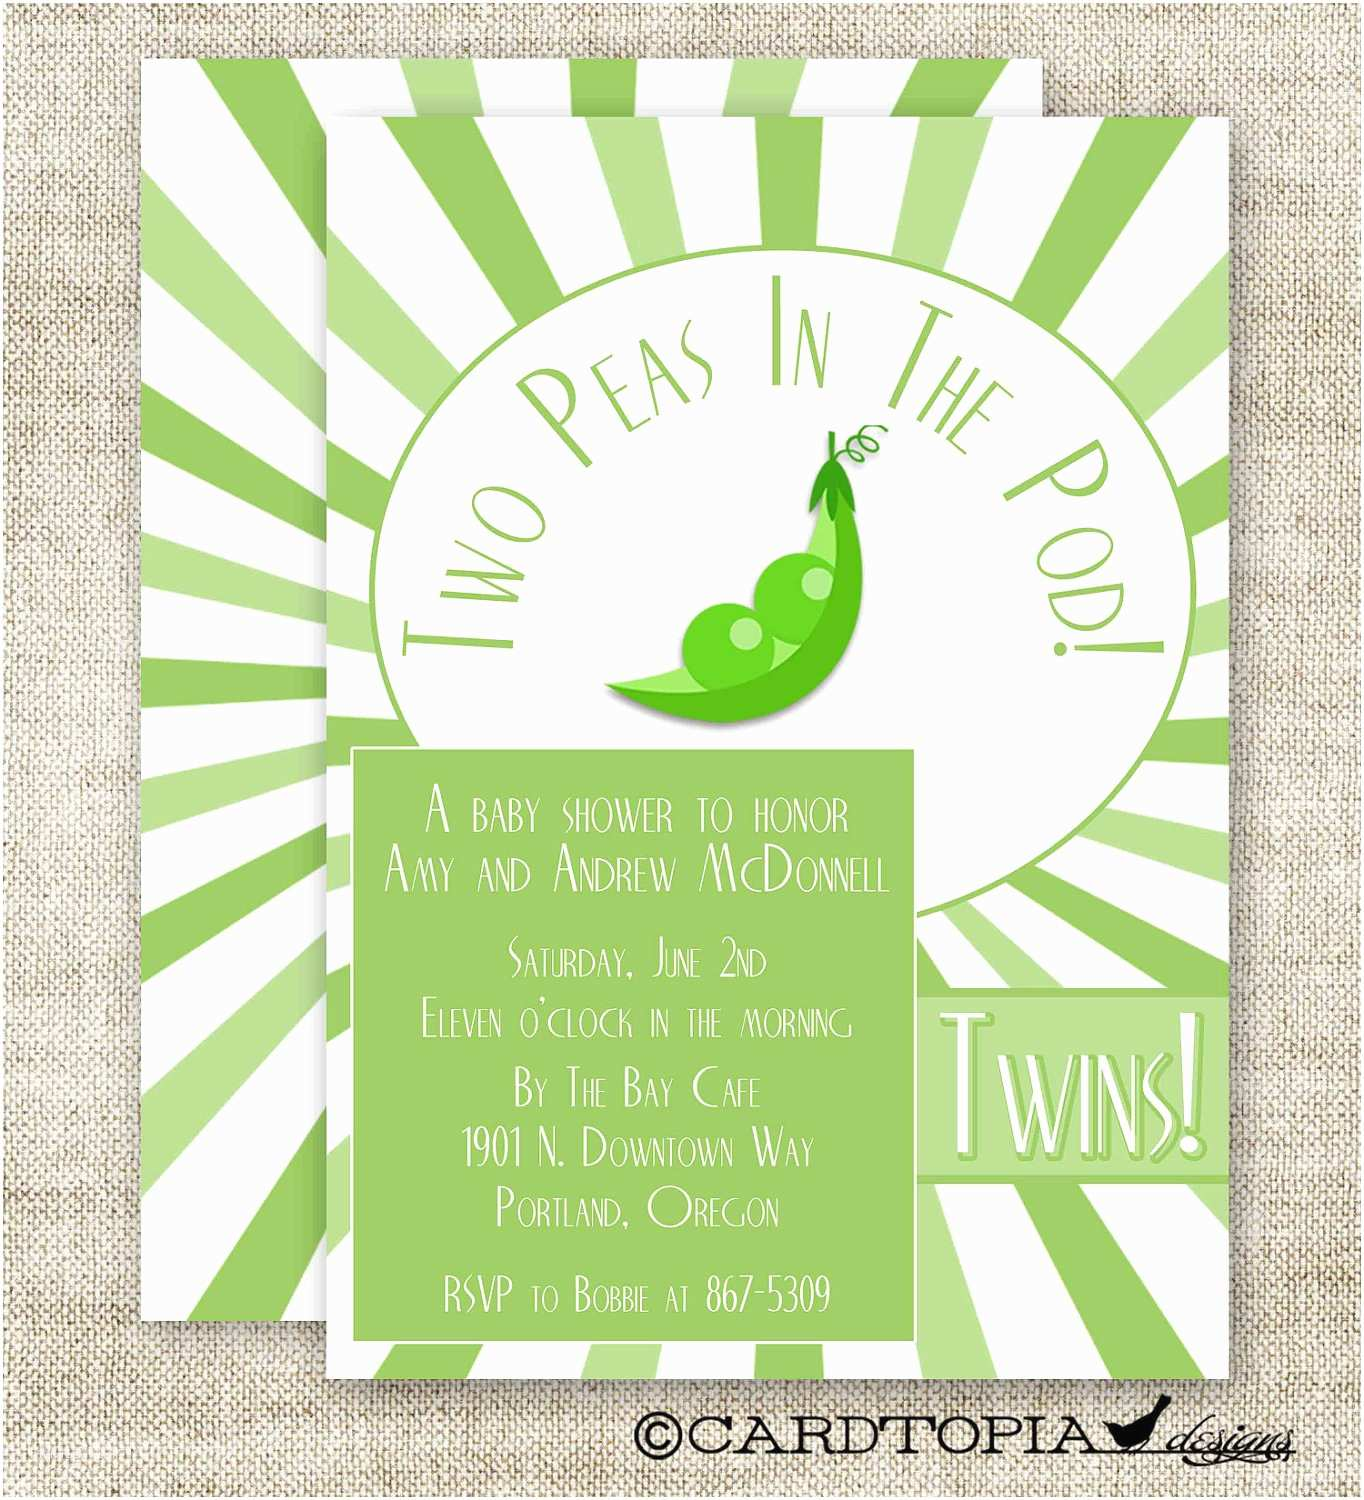 Digital Baby Shower Invitations Twin Baby Shower Invitations Digital Printable Personalized